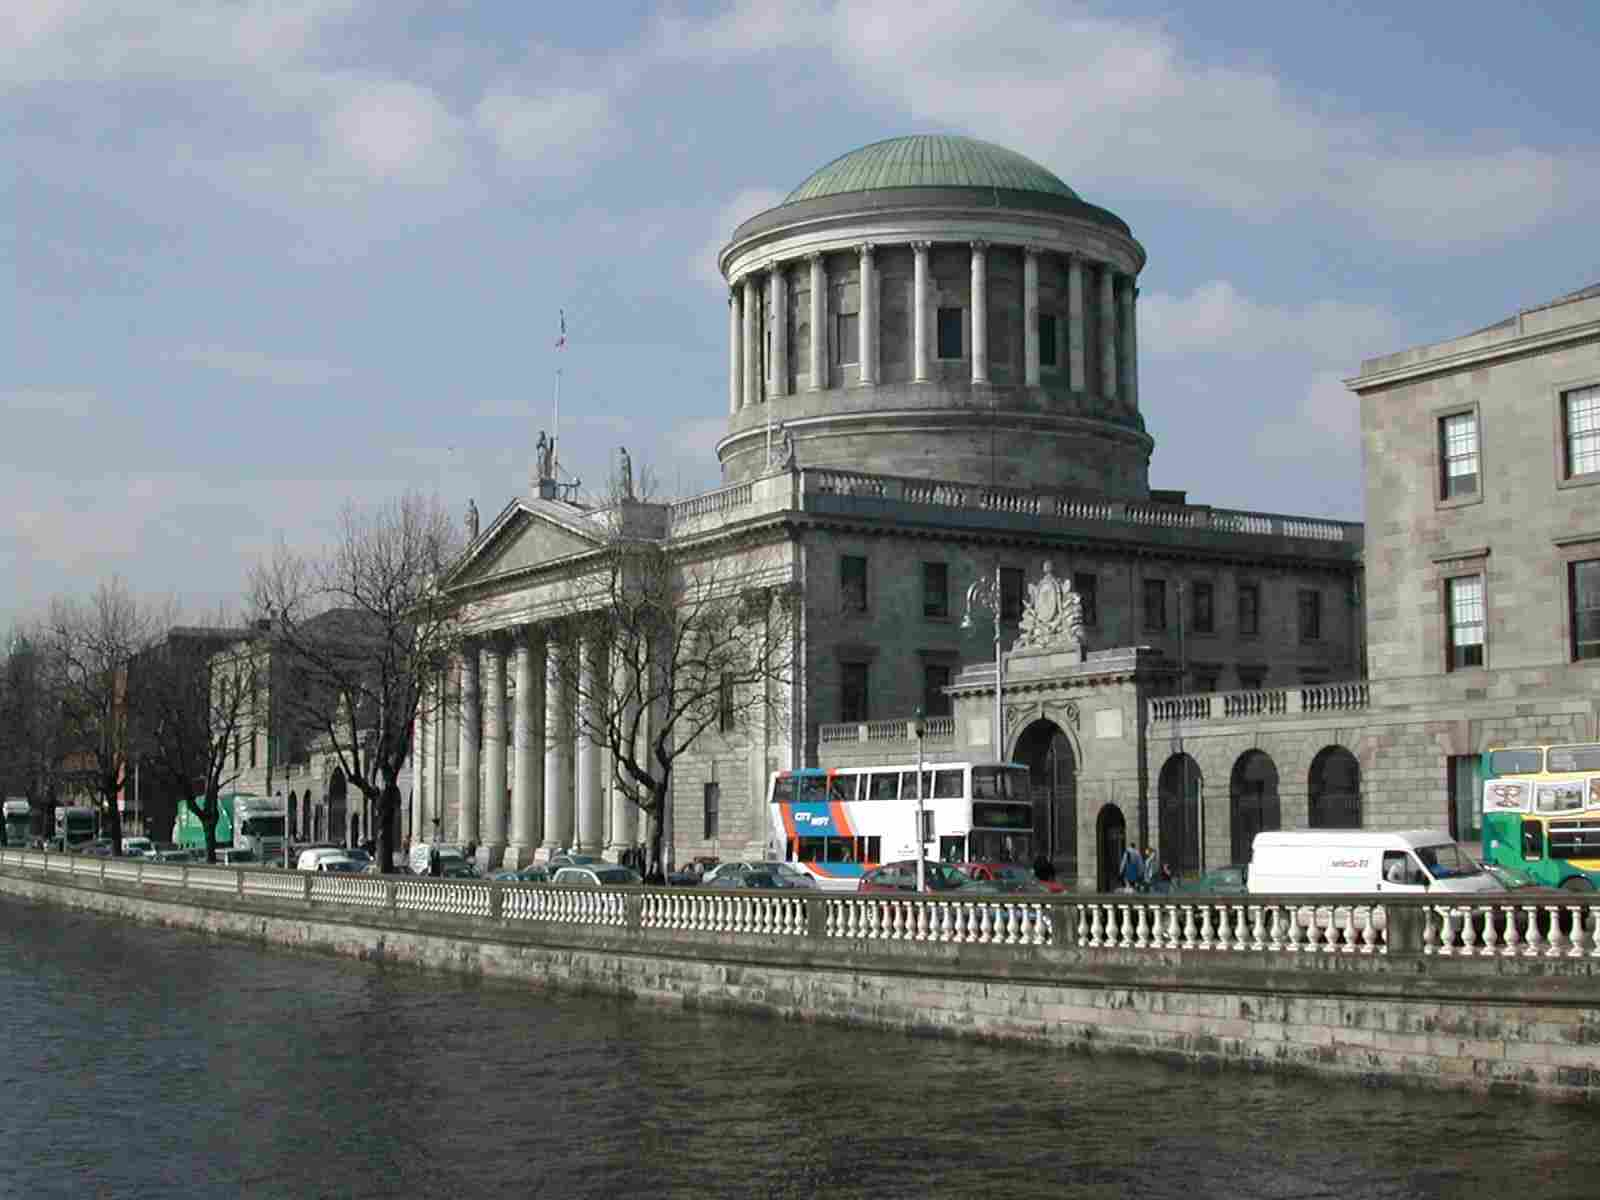 The Four Courts by the Liffey, Dublin